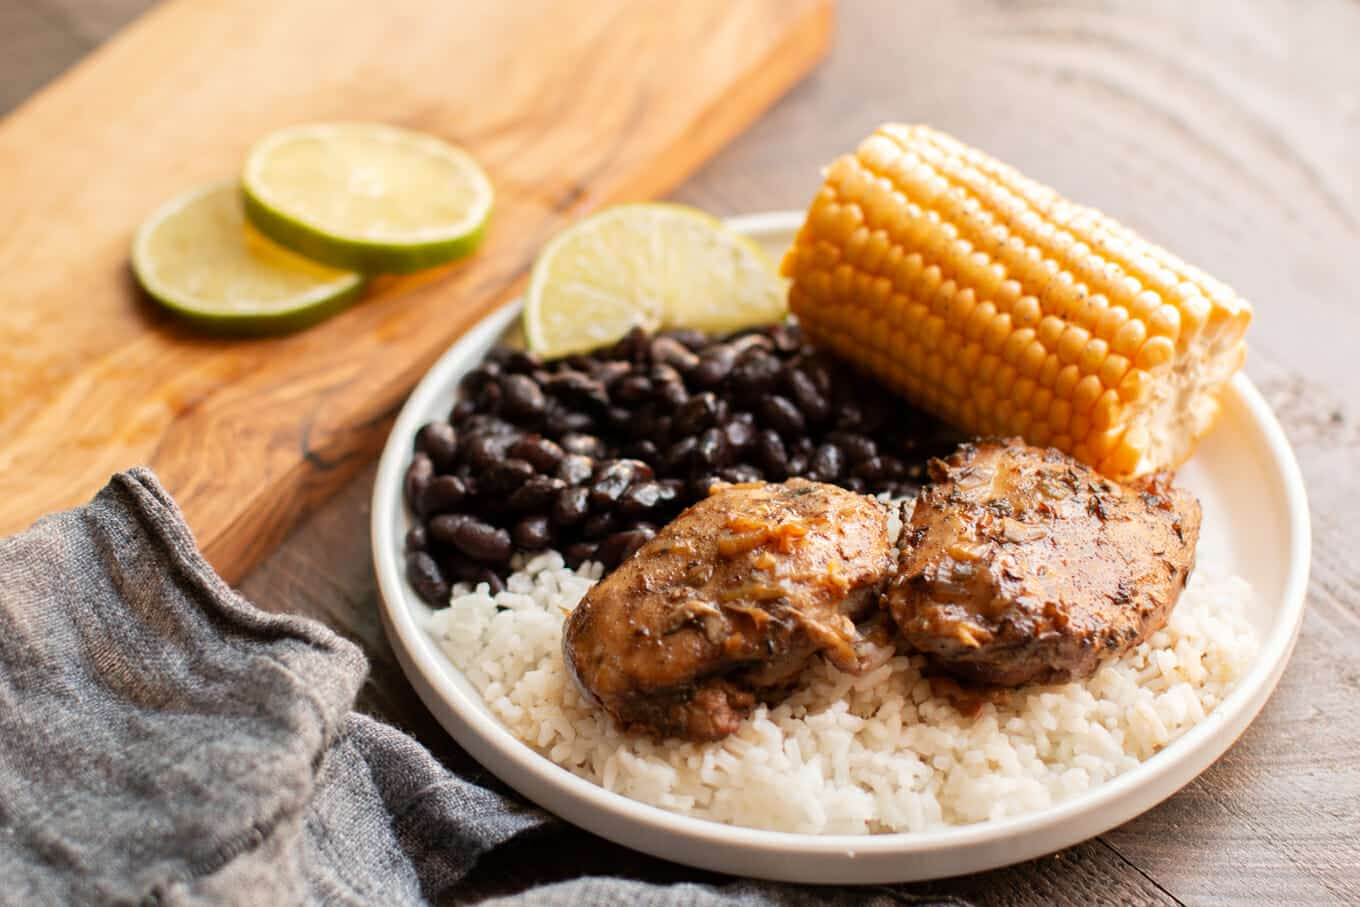 2 chicken thighs on rice with black beans and corm on white plate.